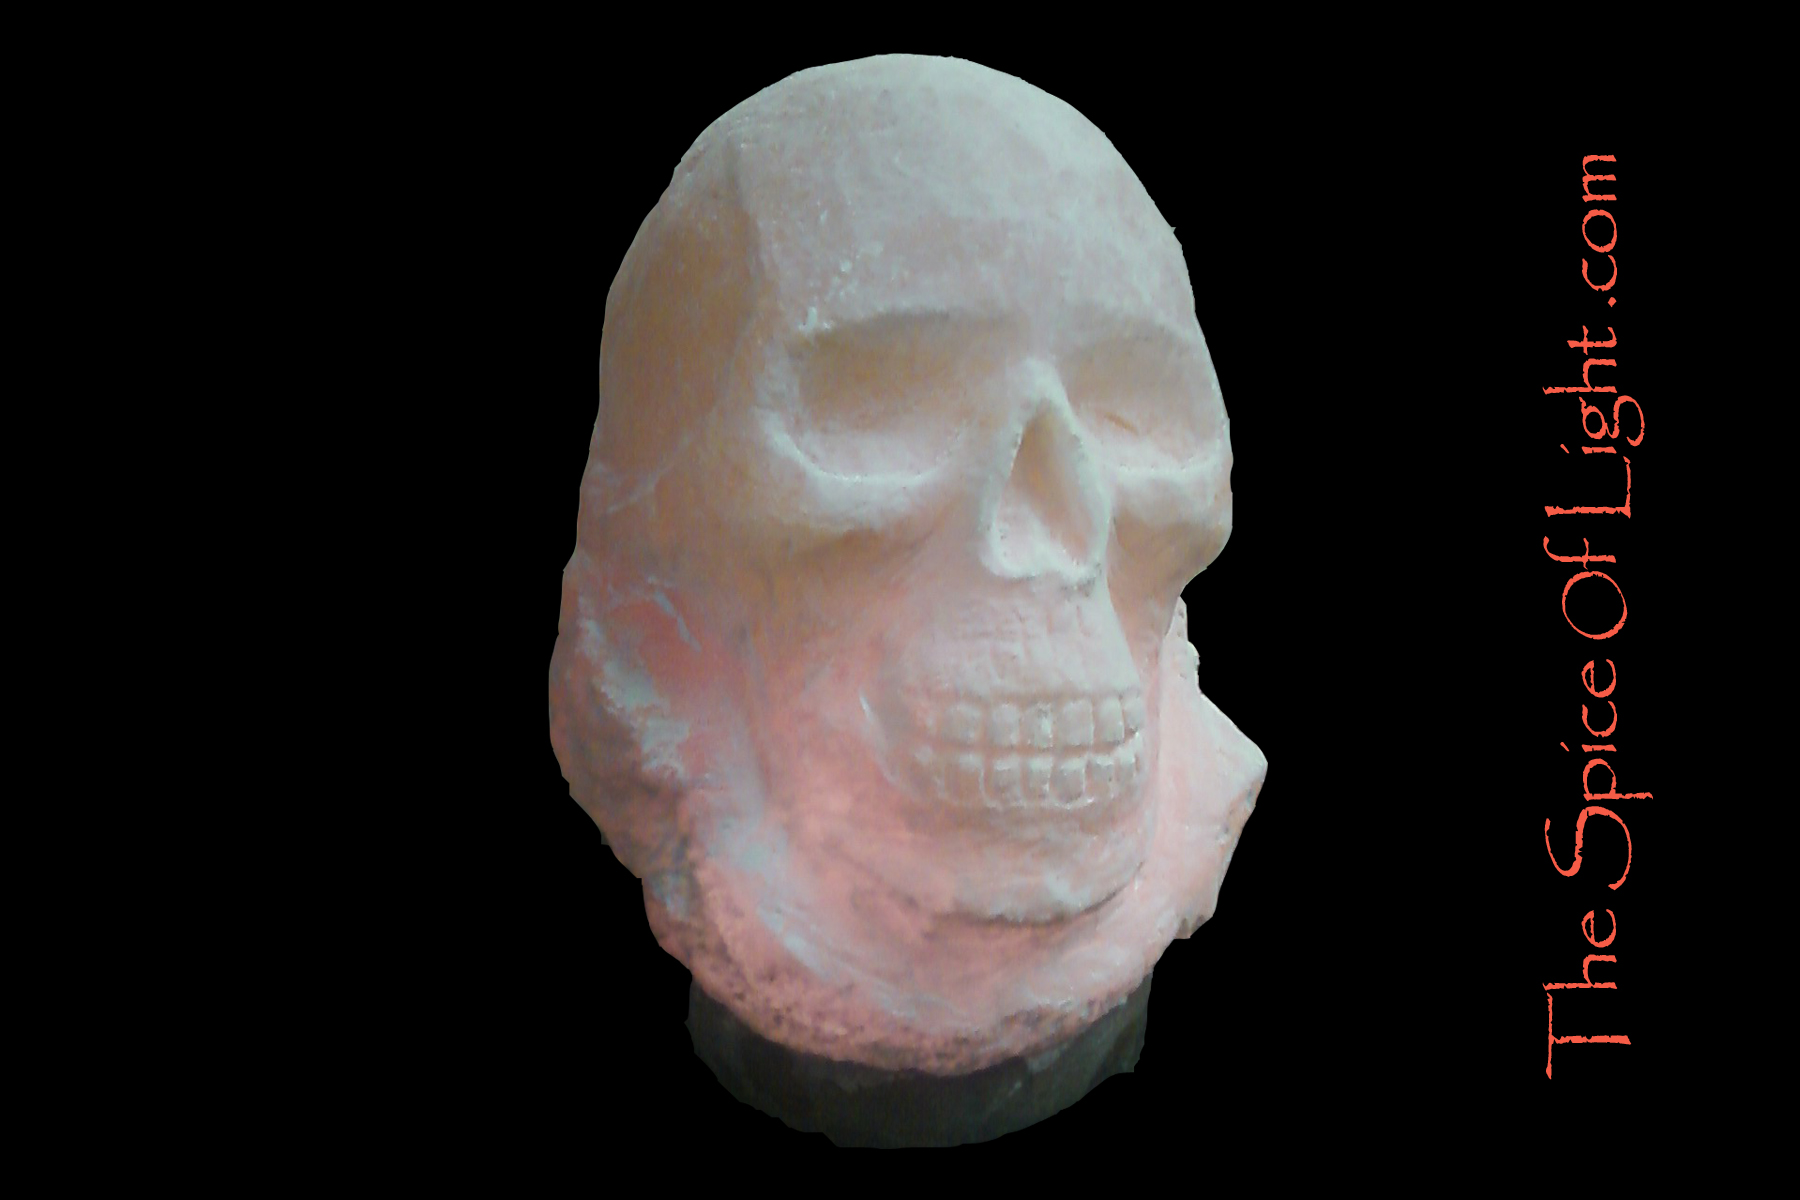 Salt Lamps Are Bad : 1. Skull, Large Himalayan salt lamp The Spice of Light